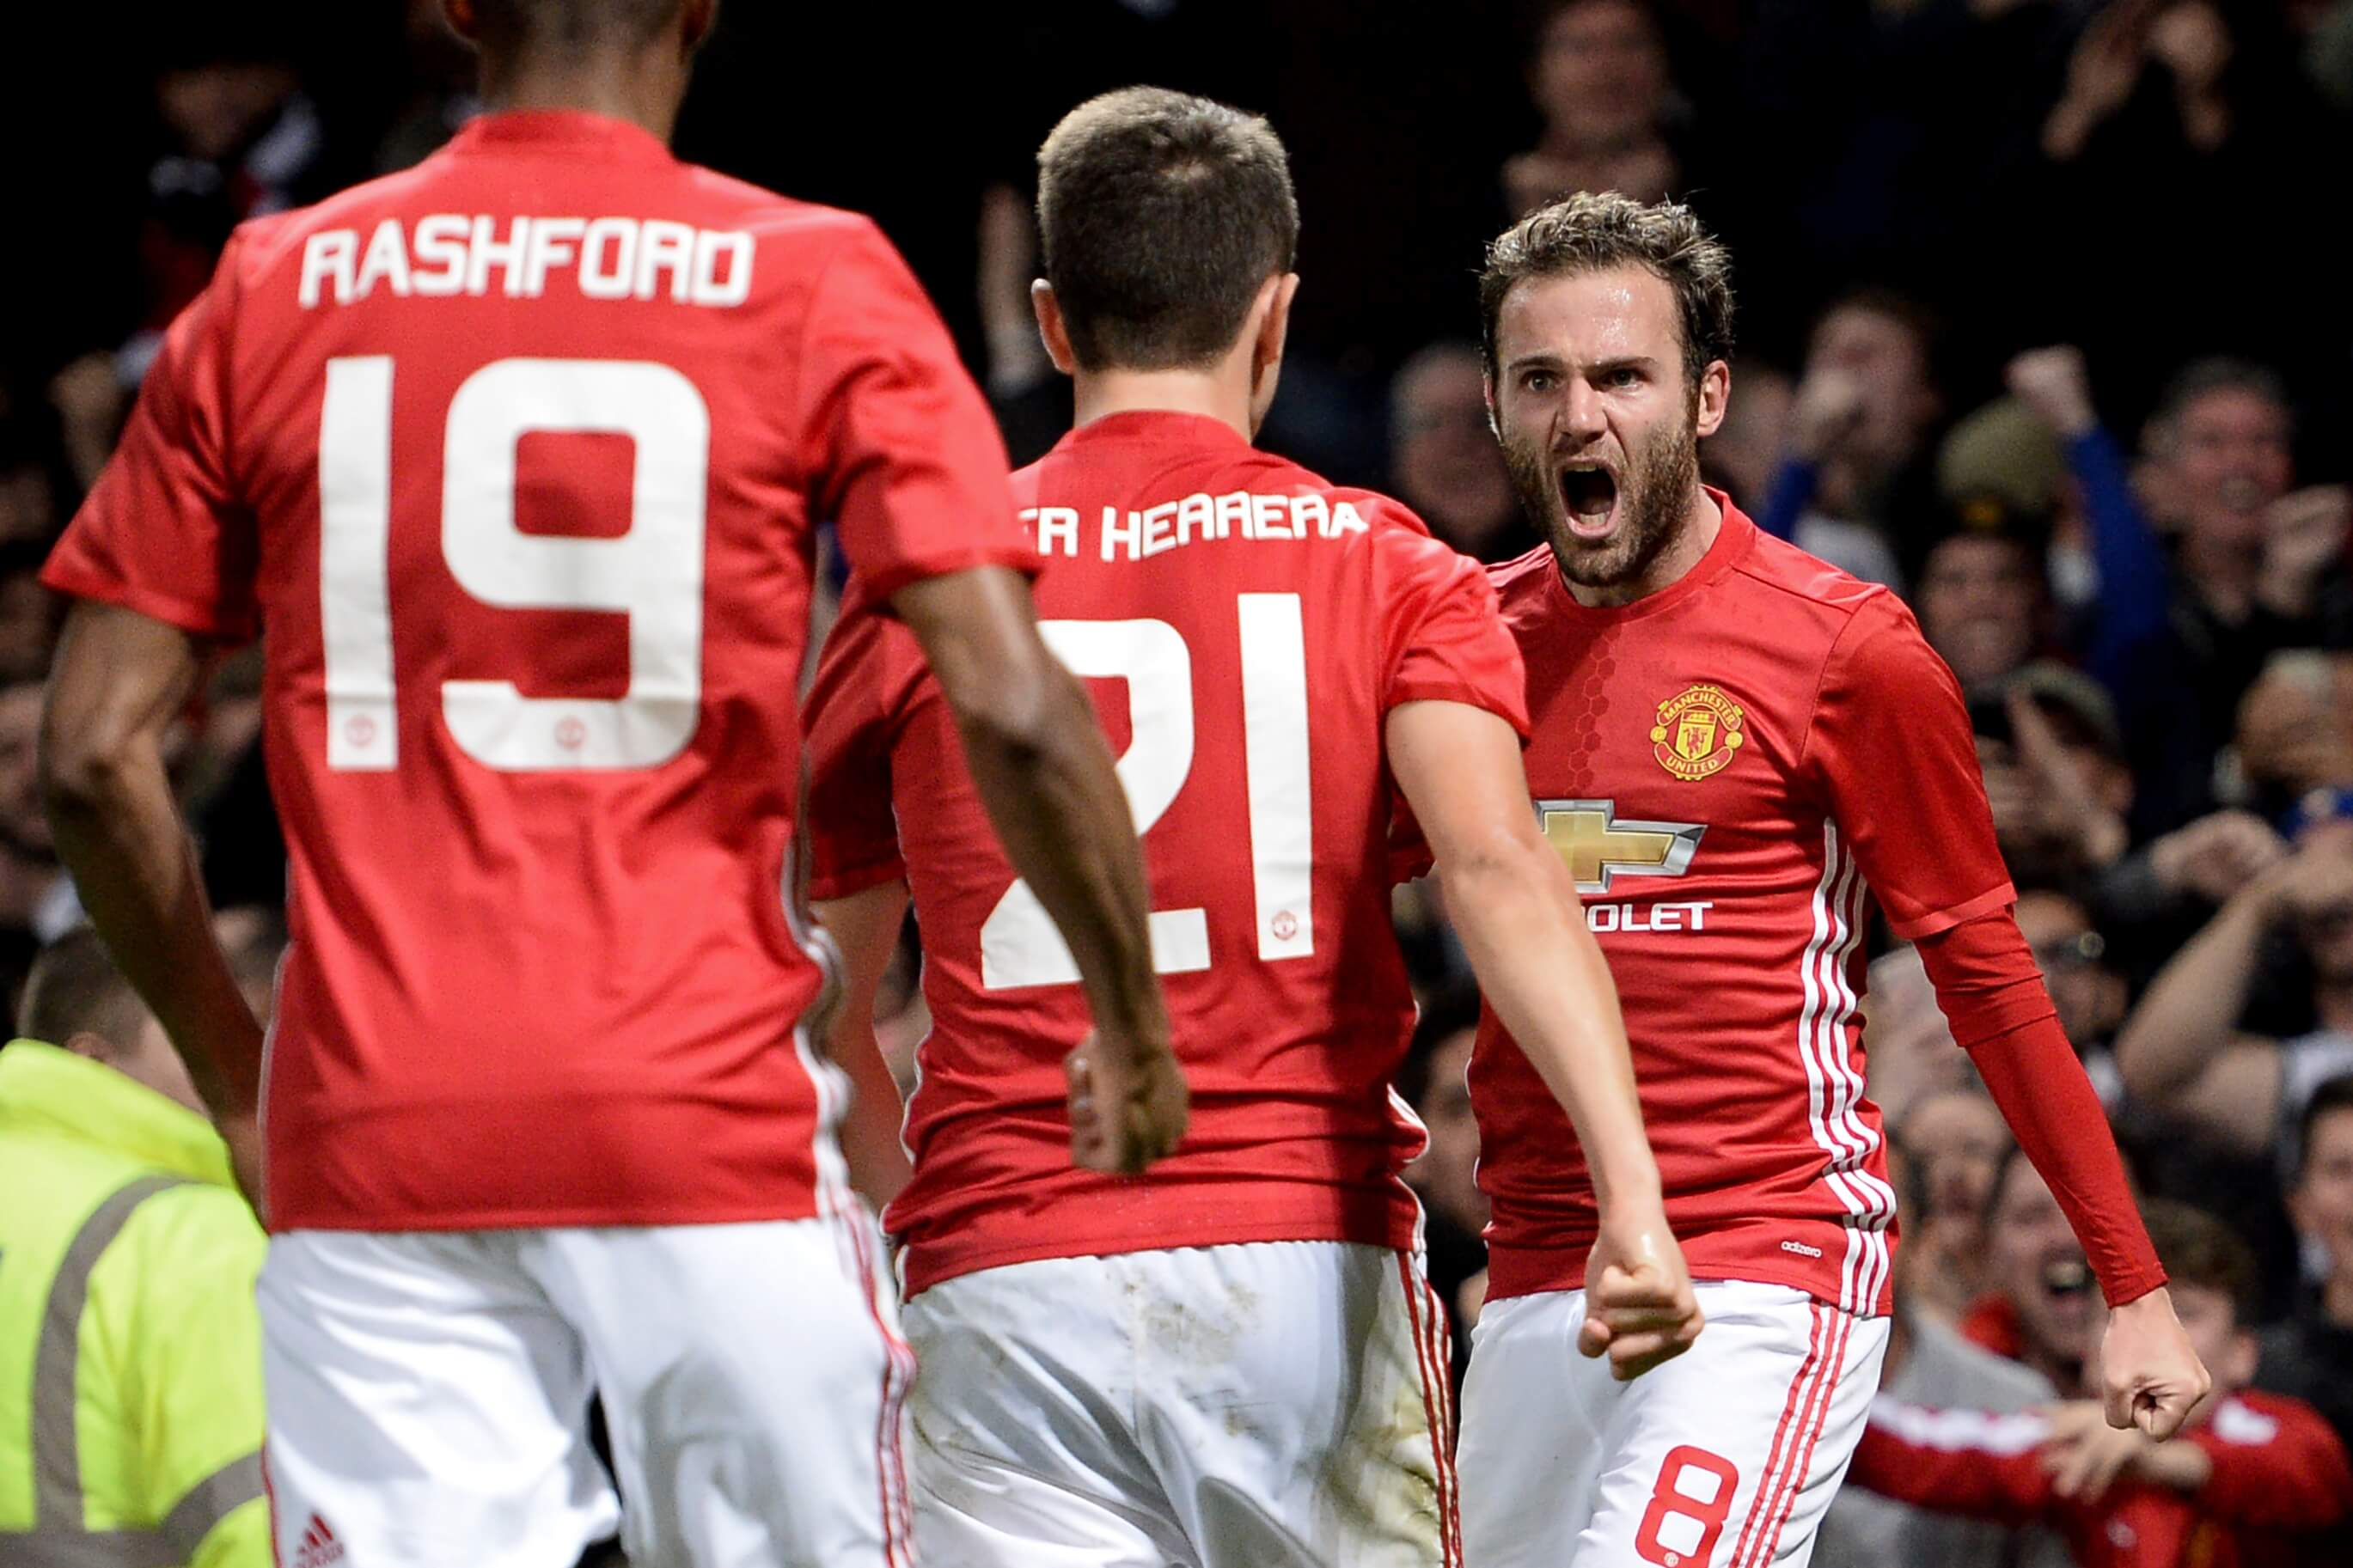 sch_blogarticle_54035_blogarticle_image_manchester_united_mata.jpg